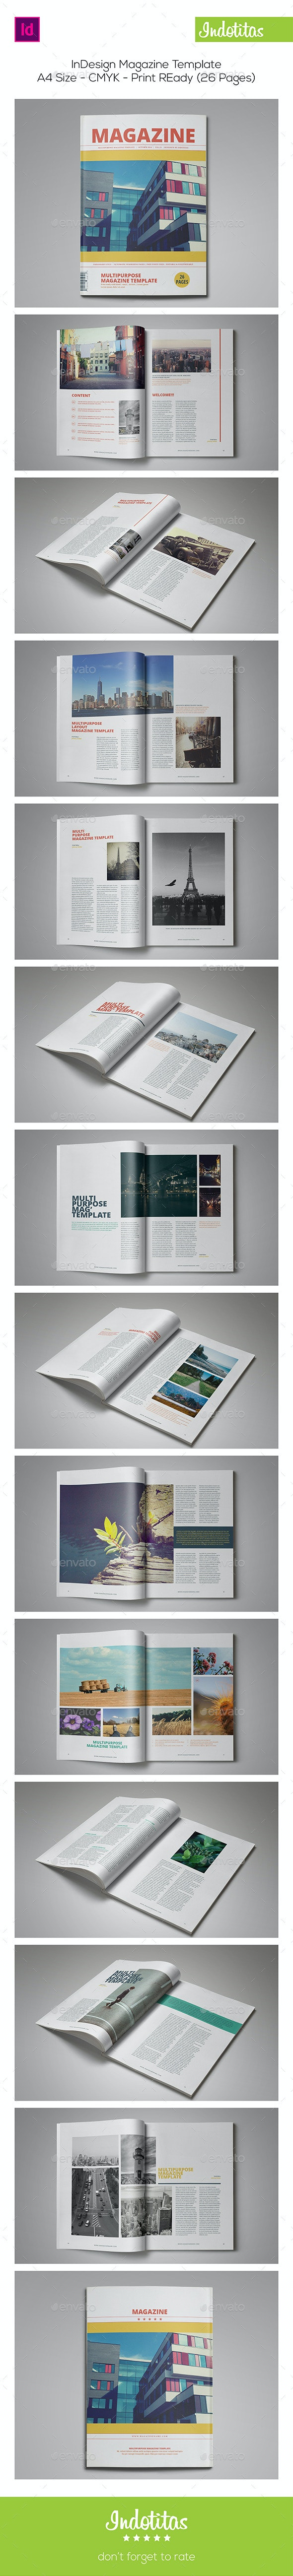 26 Pages InDesign Magazine Template - Magazines Print Templates